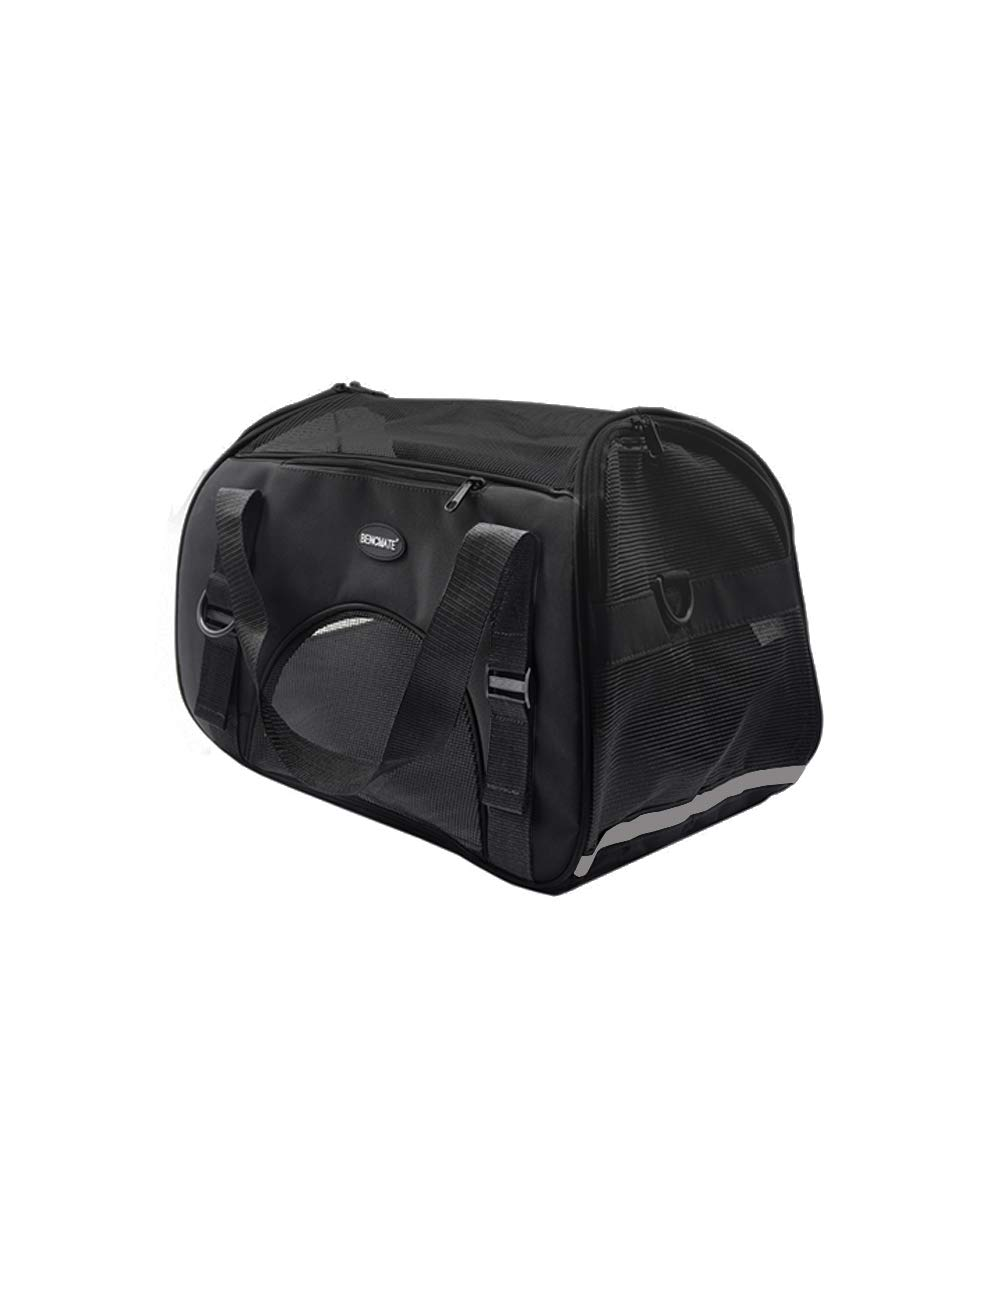 BENCMATE Soft Sided Pet Carrier ,Airline Approved Pet Travel Bags for Cats and Dogs Collapsible Under Seat(M) by BENCMATE